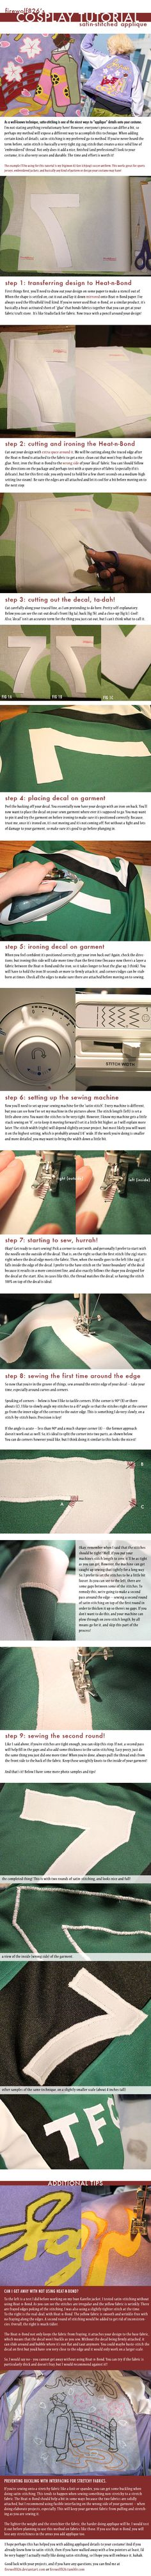 Cosplay Tutorial: Satin-Stitched Applique by firewolf826.deviantart.com on @deviantART